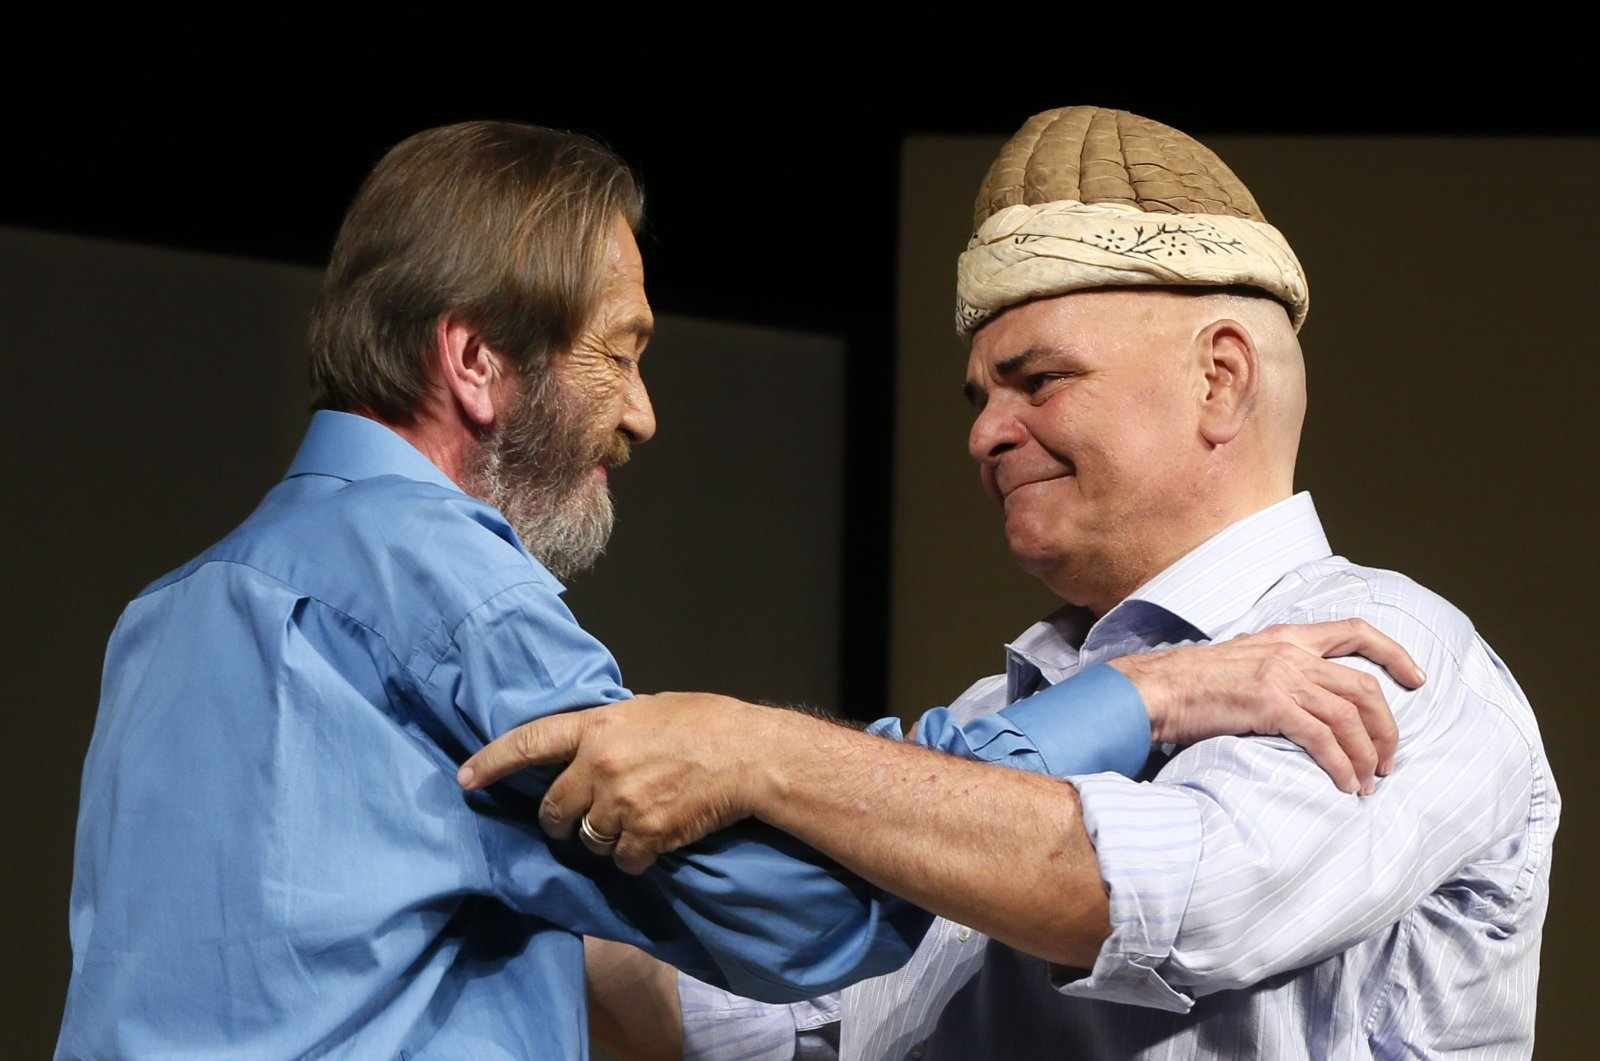 Actor Ferhan fiensoy (L) hands the kavuk to Rasim Öztekin at Ses Theater in Istanbul, May 12, 2016. (AA Photo)